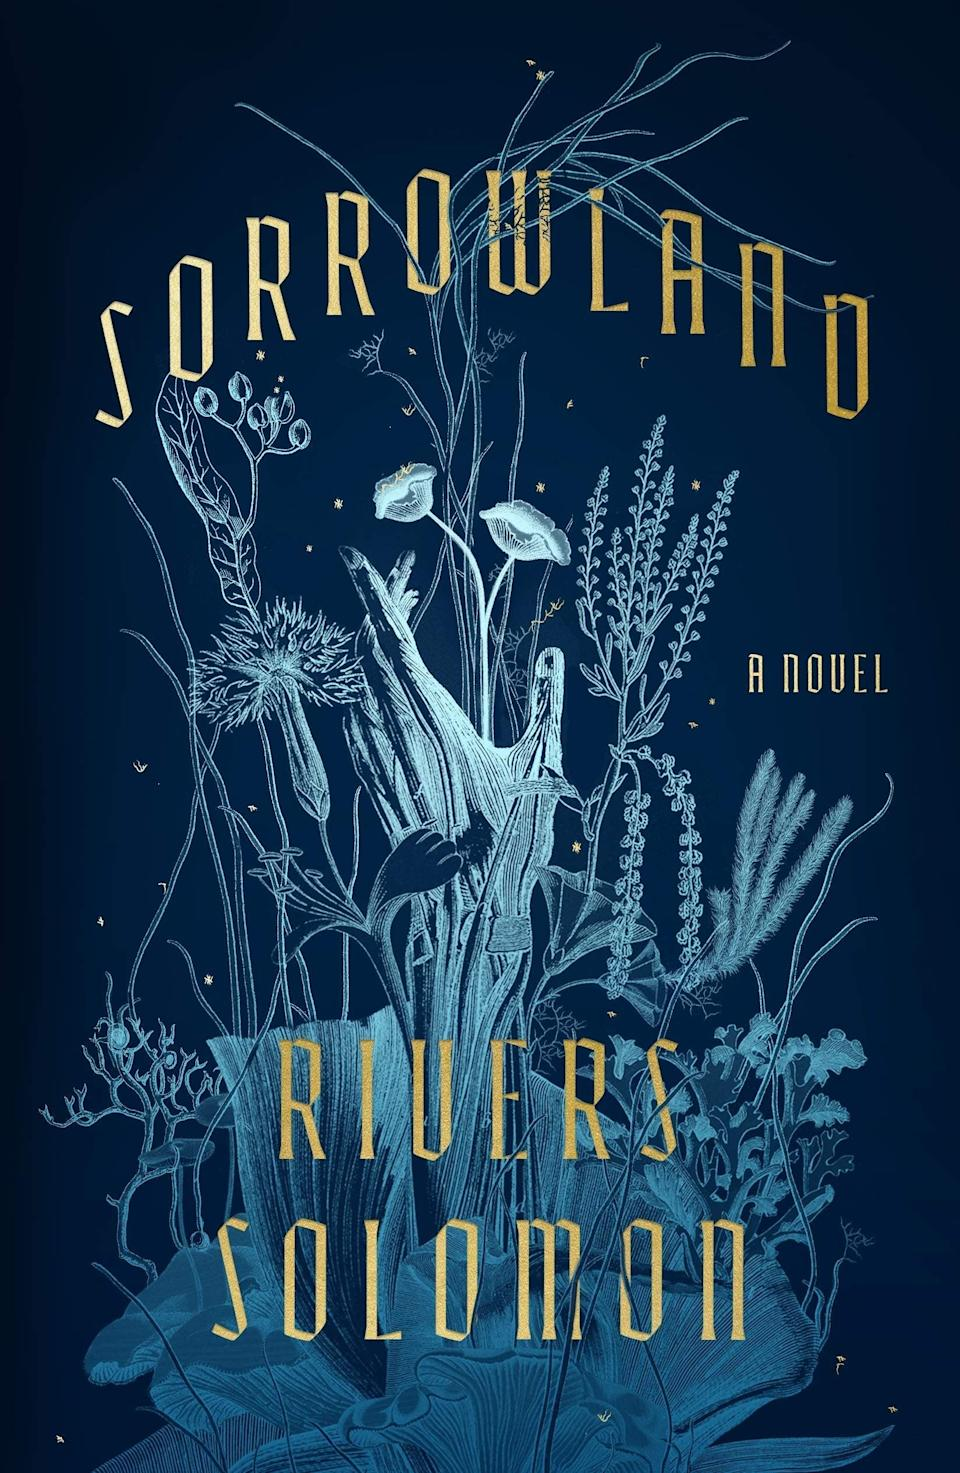 """Combining a dark, fictional world with real-life horrors, <em>Sorrowland </em>brings gothic literature into a whole new light. Telling the story of Vern and her ostracised life in the woods, her existence surrounds protecting her two young children from the outside world. But when she feels that her body is starting to change without her control, she has to go back to the religious compound she ran away from to get answers. With a terrifying history of medical experiments and genocide, Vern has to unravel the compound's terrifying past, discovering that the nightmares are far more systematic than she ever realised. <br><br><strong>Rivers Soloman</strong> Sorrowland, $, available at <a href=""""https://uk.bookshop.org/books/1608506589_sorrowland/9781529118735"""" rel=""""nofollow noopener"""" target=""""_blank"""" data-ylk=""""slk:bookshop.org"""" class=""""link rapid-noclick-resp"""">bookshop.org</a>"""